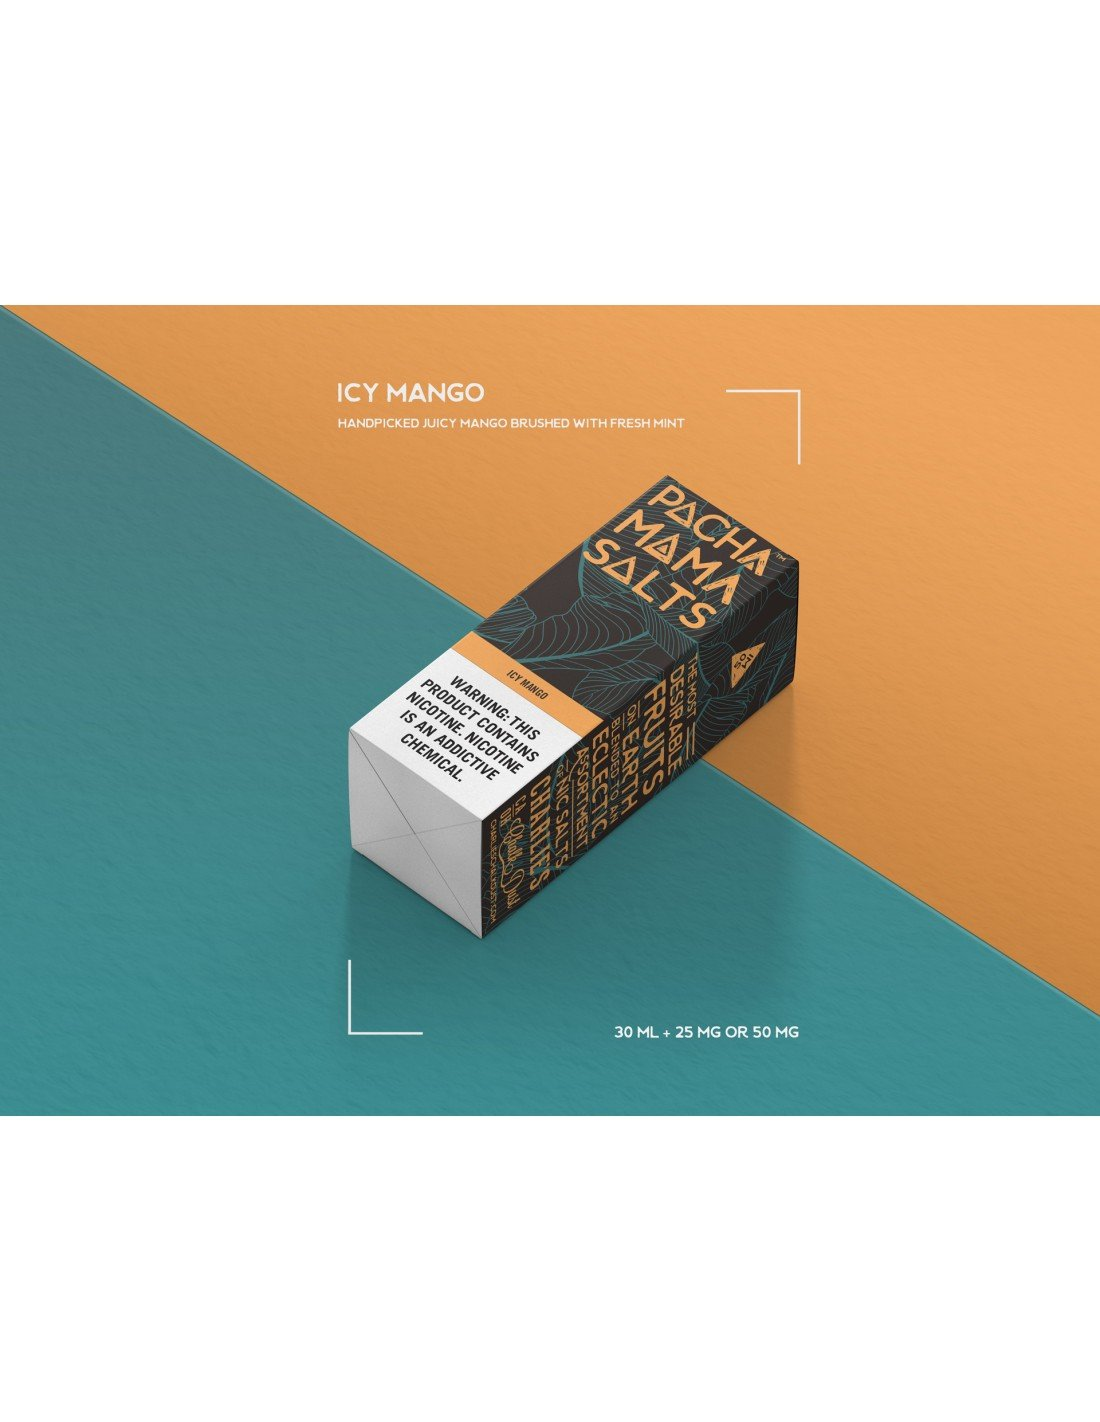 Pachamama Nicotine Salt 30mL by Charlie's Chalk Dust - Vaporider